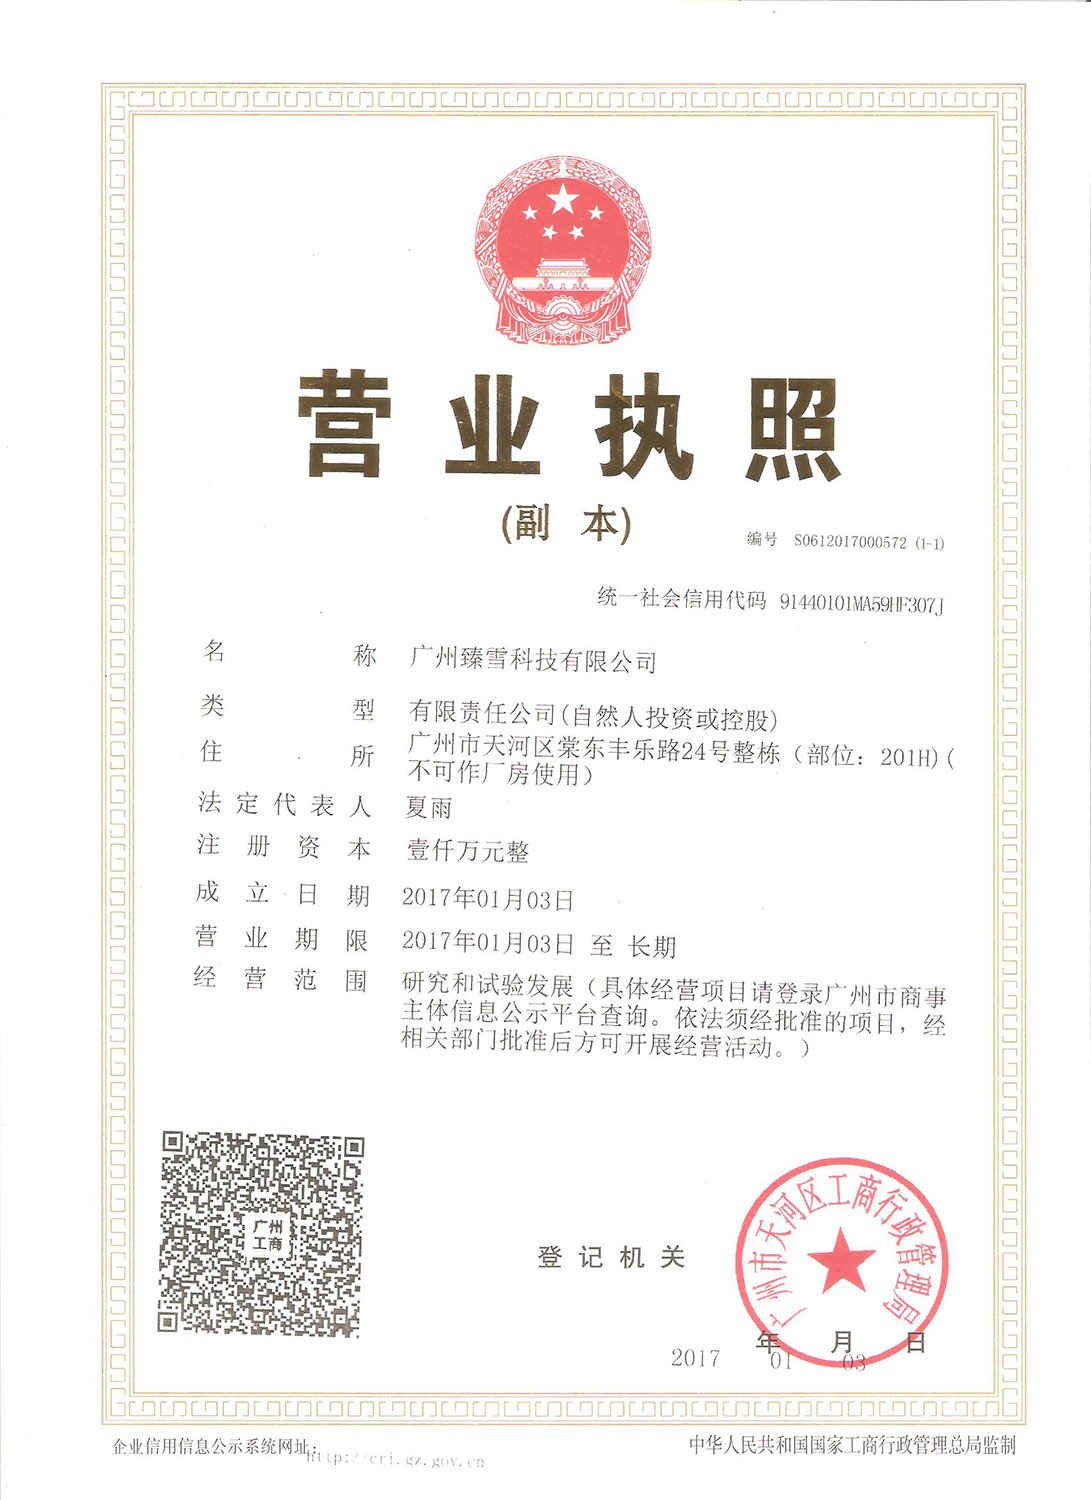 Sehyen Business License